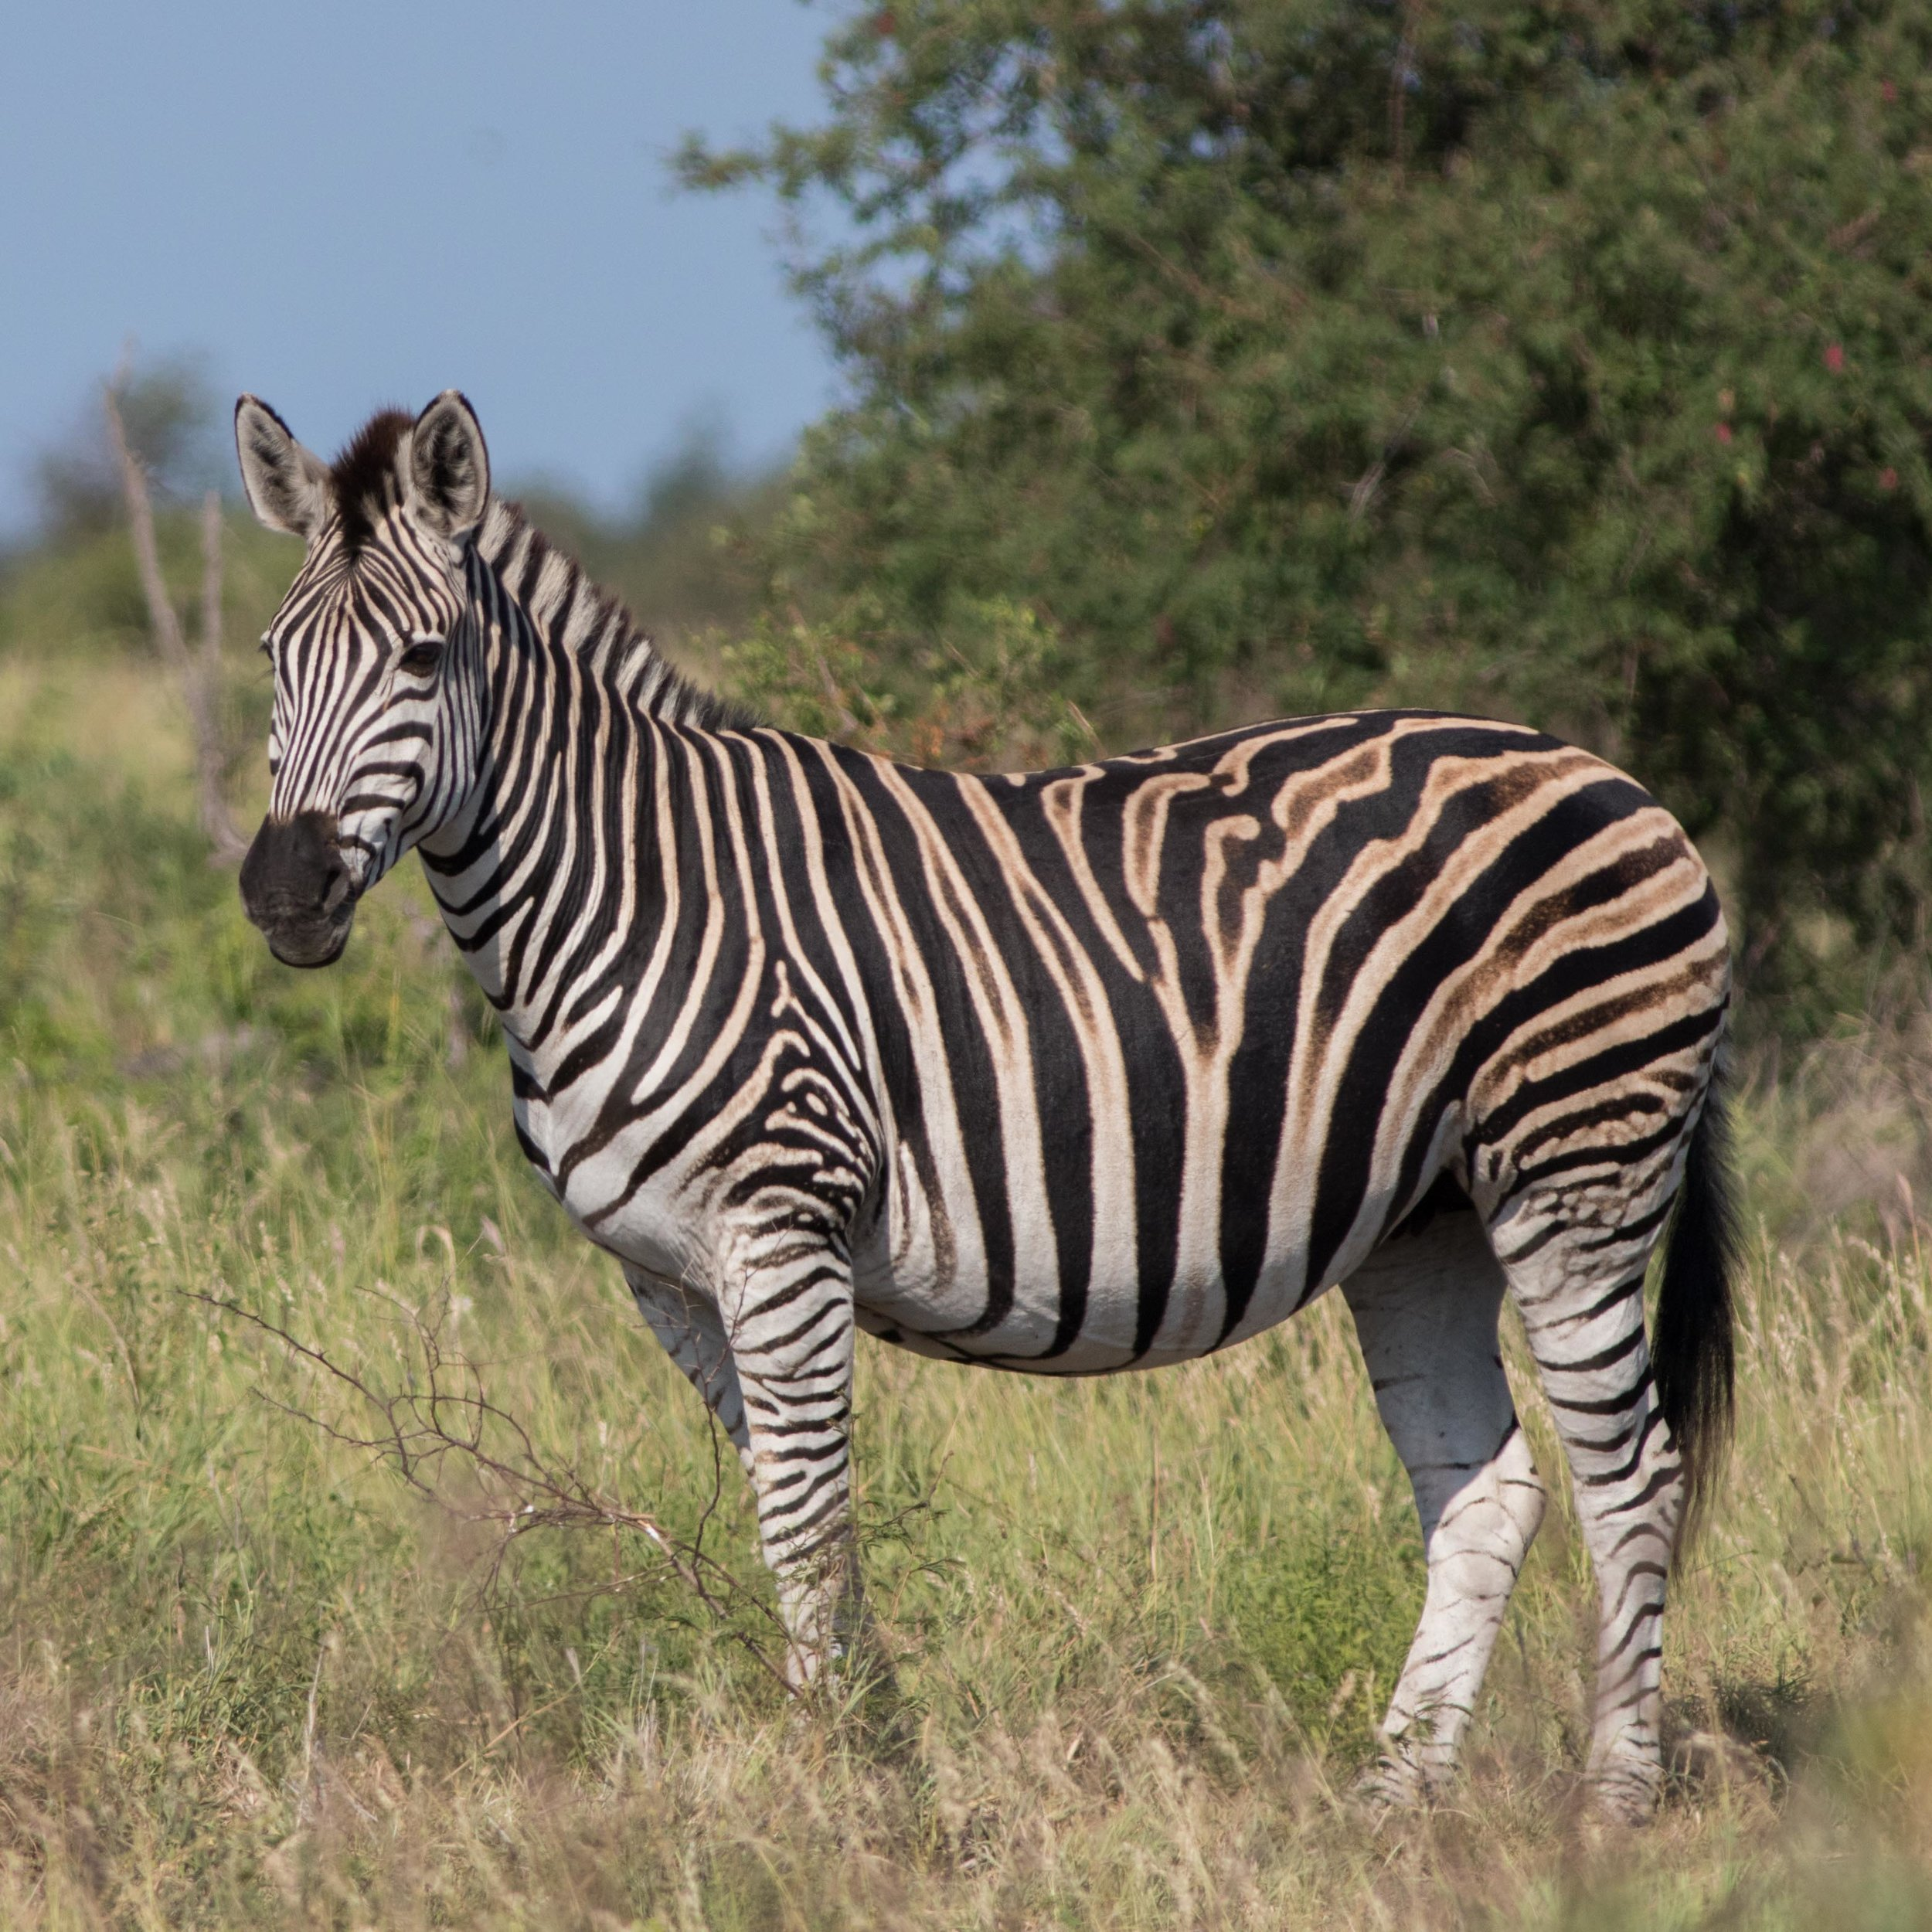 An pregnant female zebra takes a break from feeding to scan her surroundings.